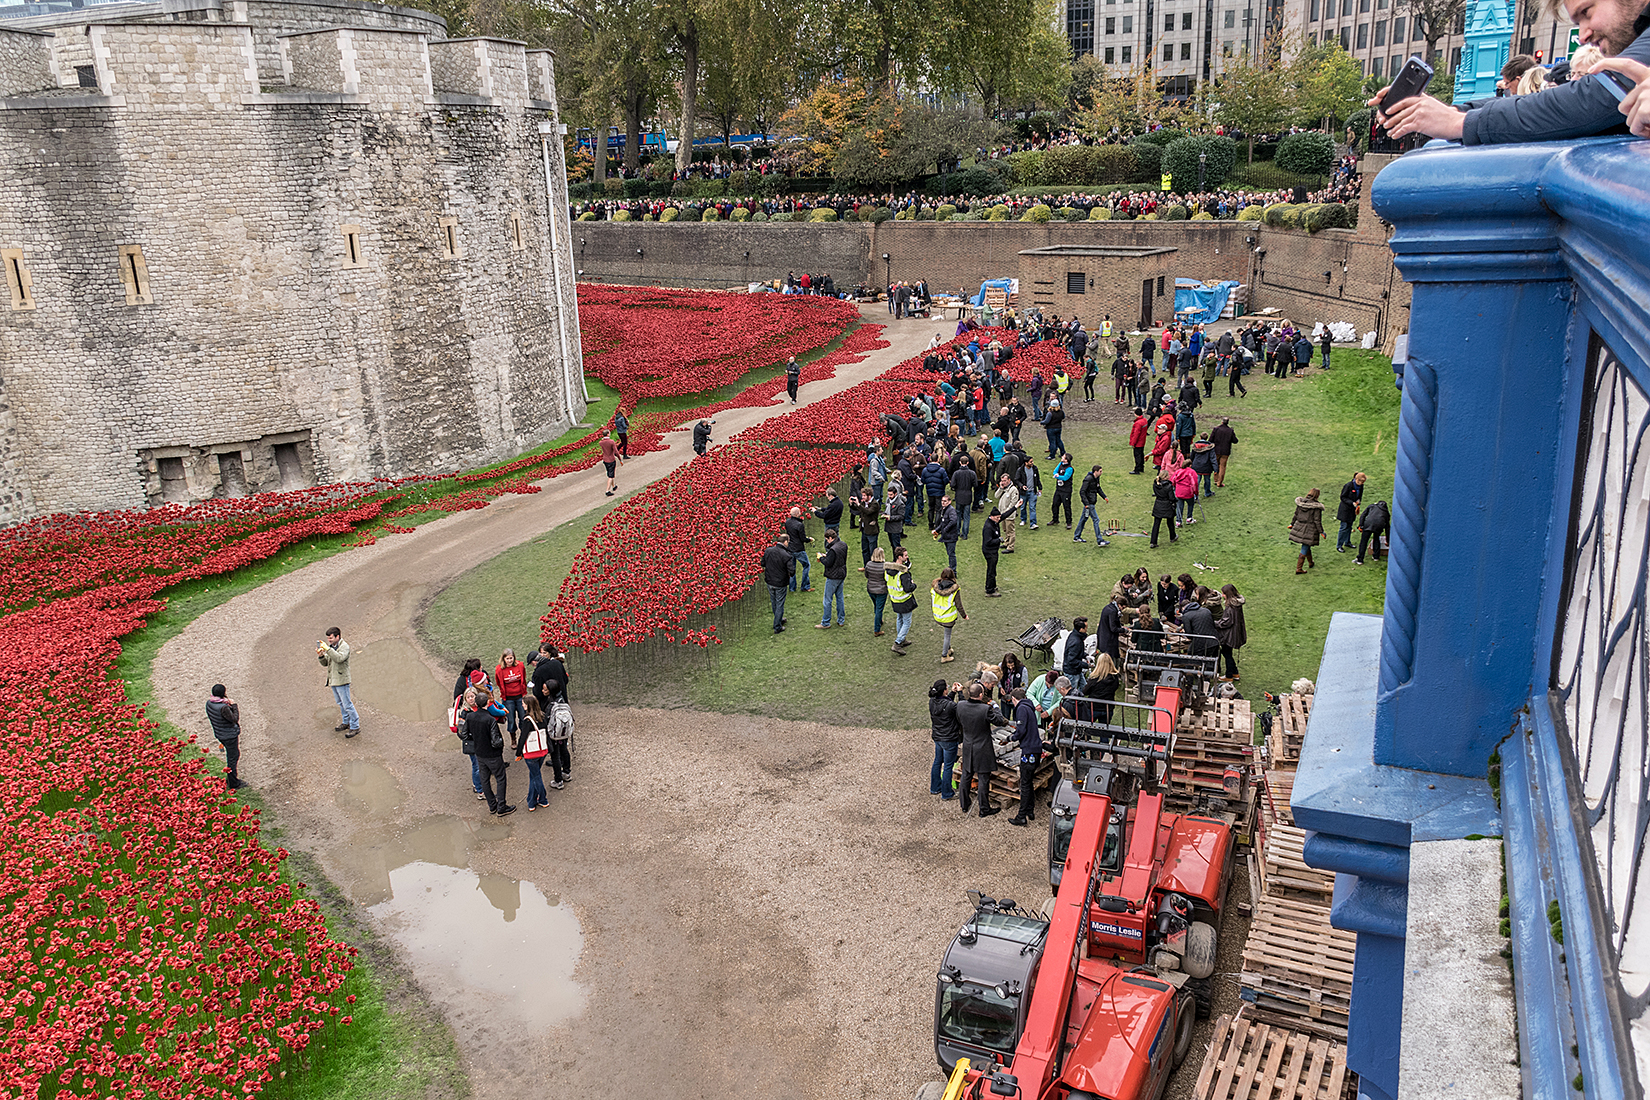 Final poppies being assembled and placed in the installation